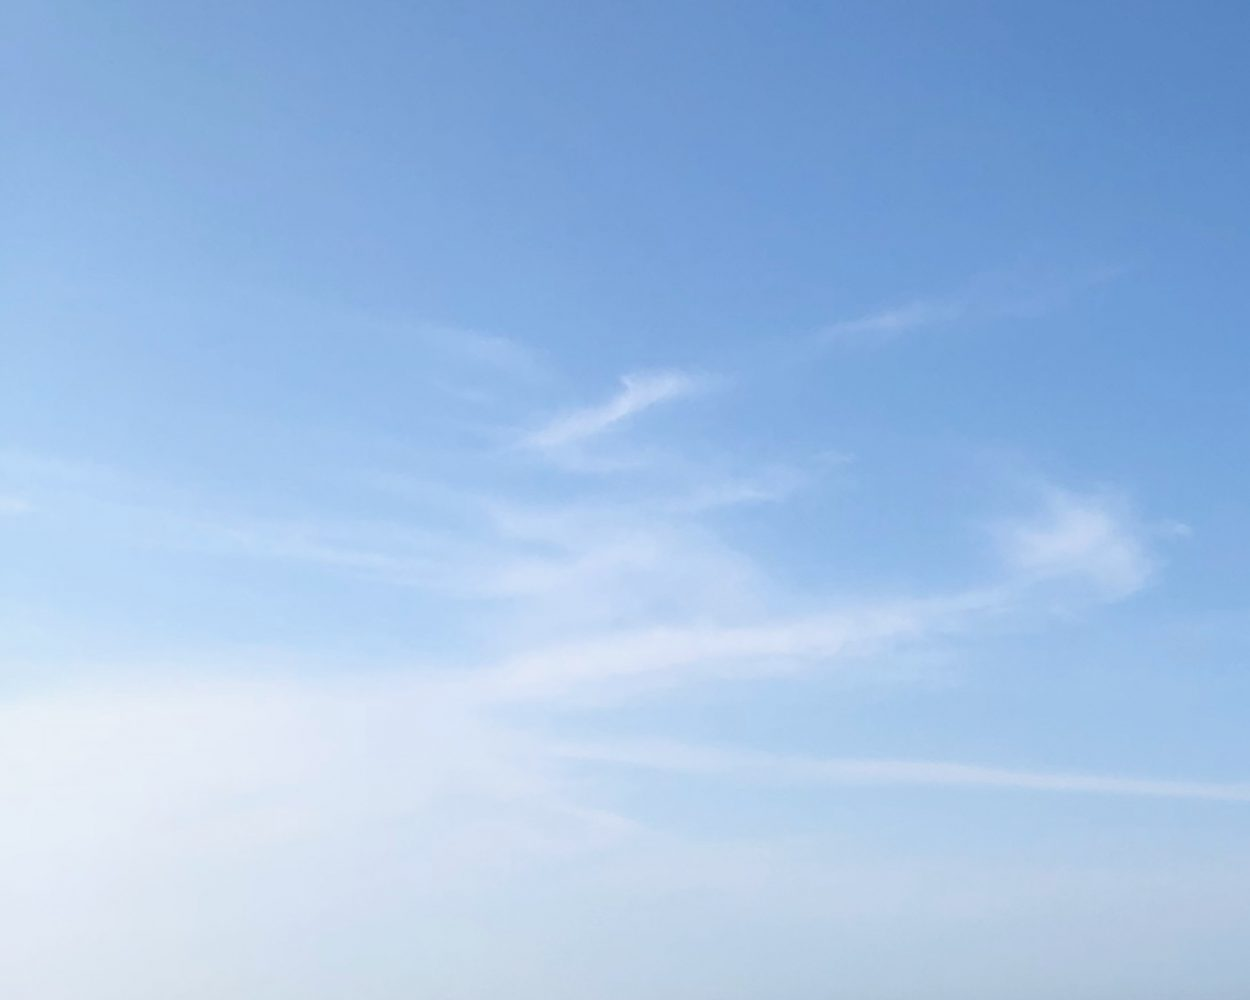 Cirrostratus clouds against a pale blue sky